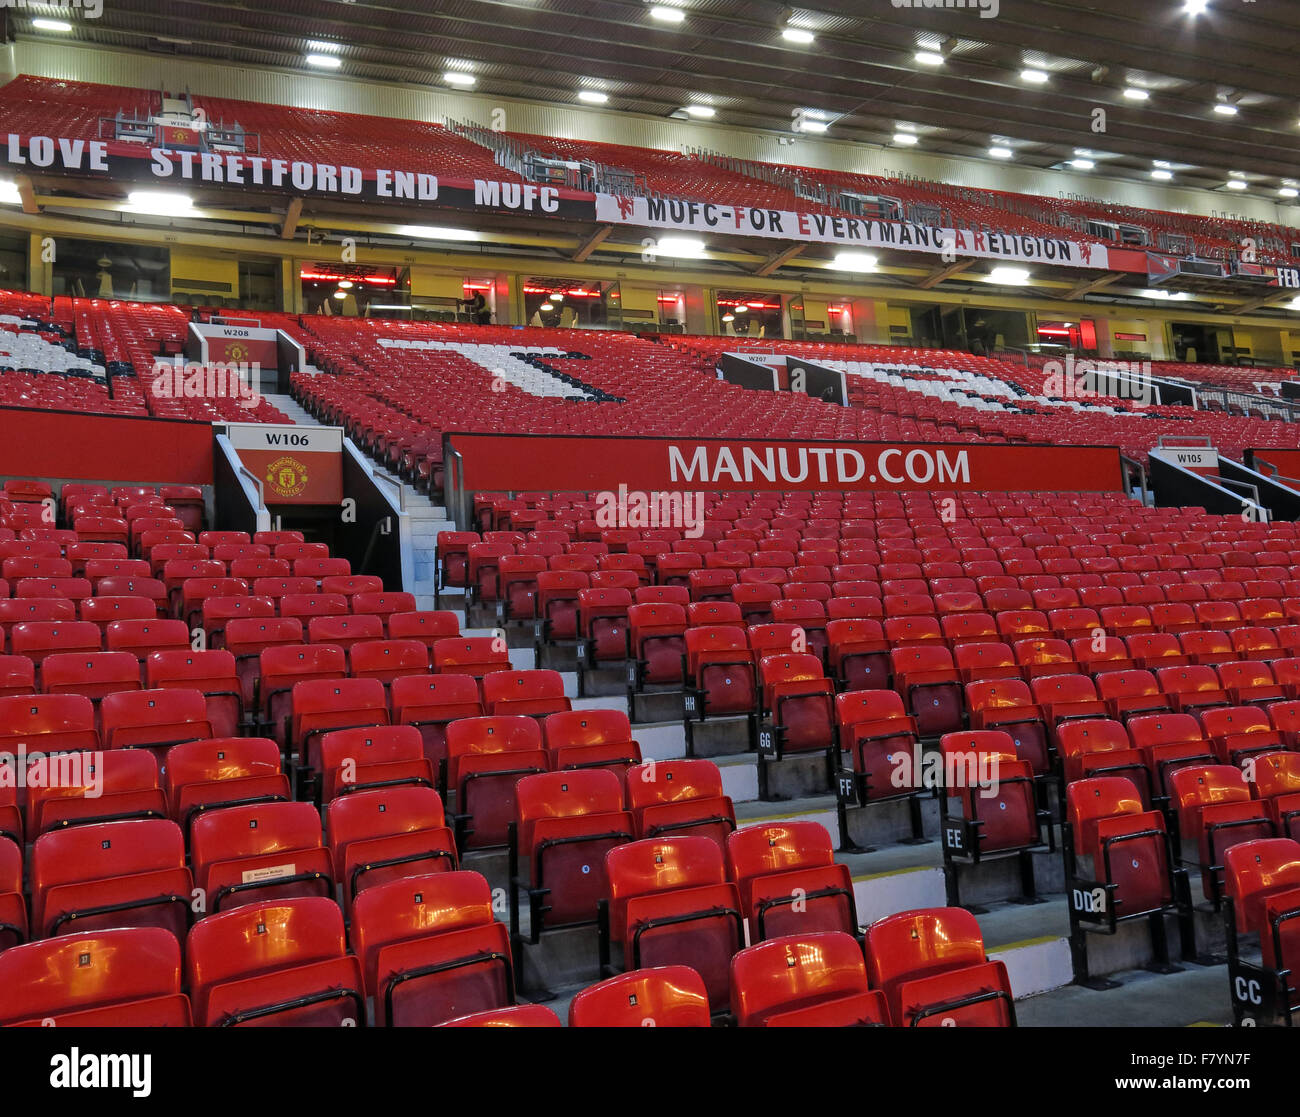 The Manchester United Stretford End,Old Trafford stadium,MUFC,England,UK - Stock Image